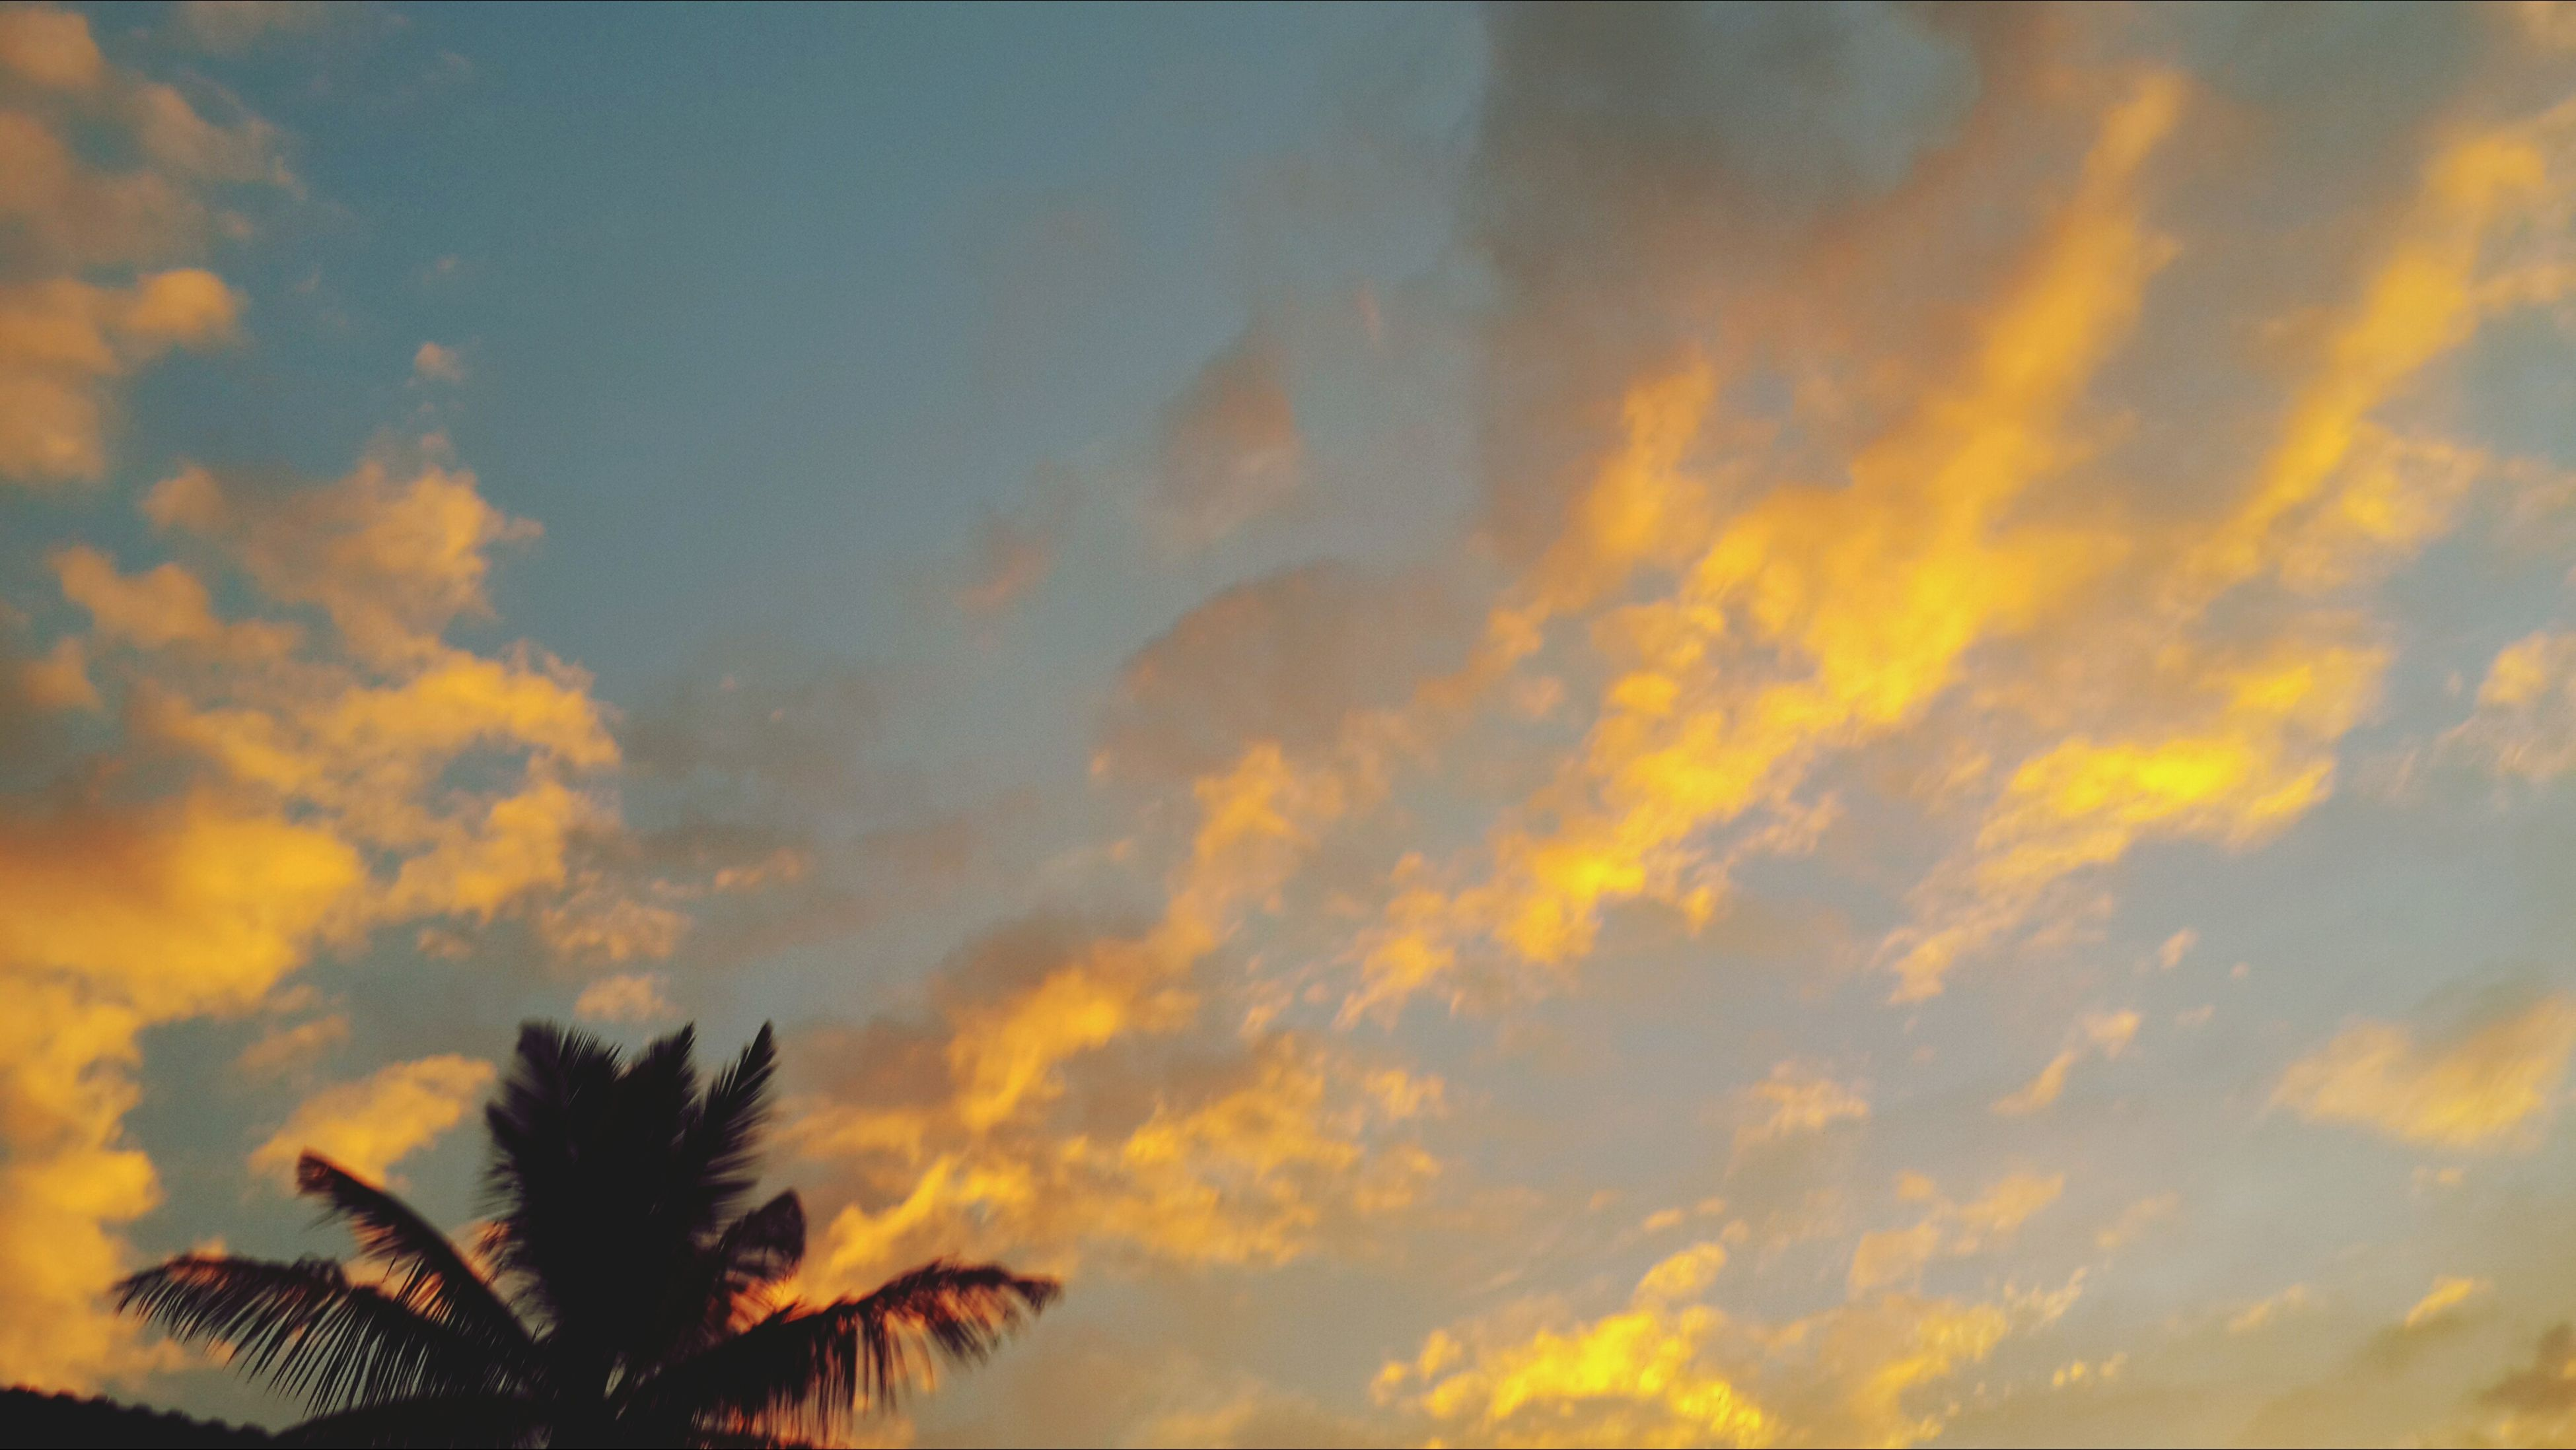 sunset, sky, low angle view, cloud - sky, beauty in nature, tranquility, scenics, orange color, nature, tranquil scene, cloudy, tree, silhouette, cloud, dramatic sky, idyllic, palm tree, growth, outdoors, no people